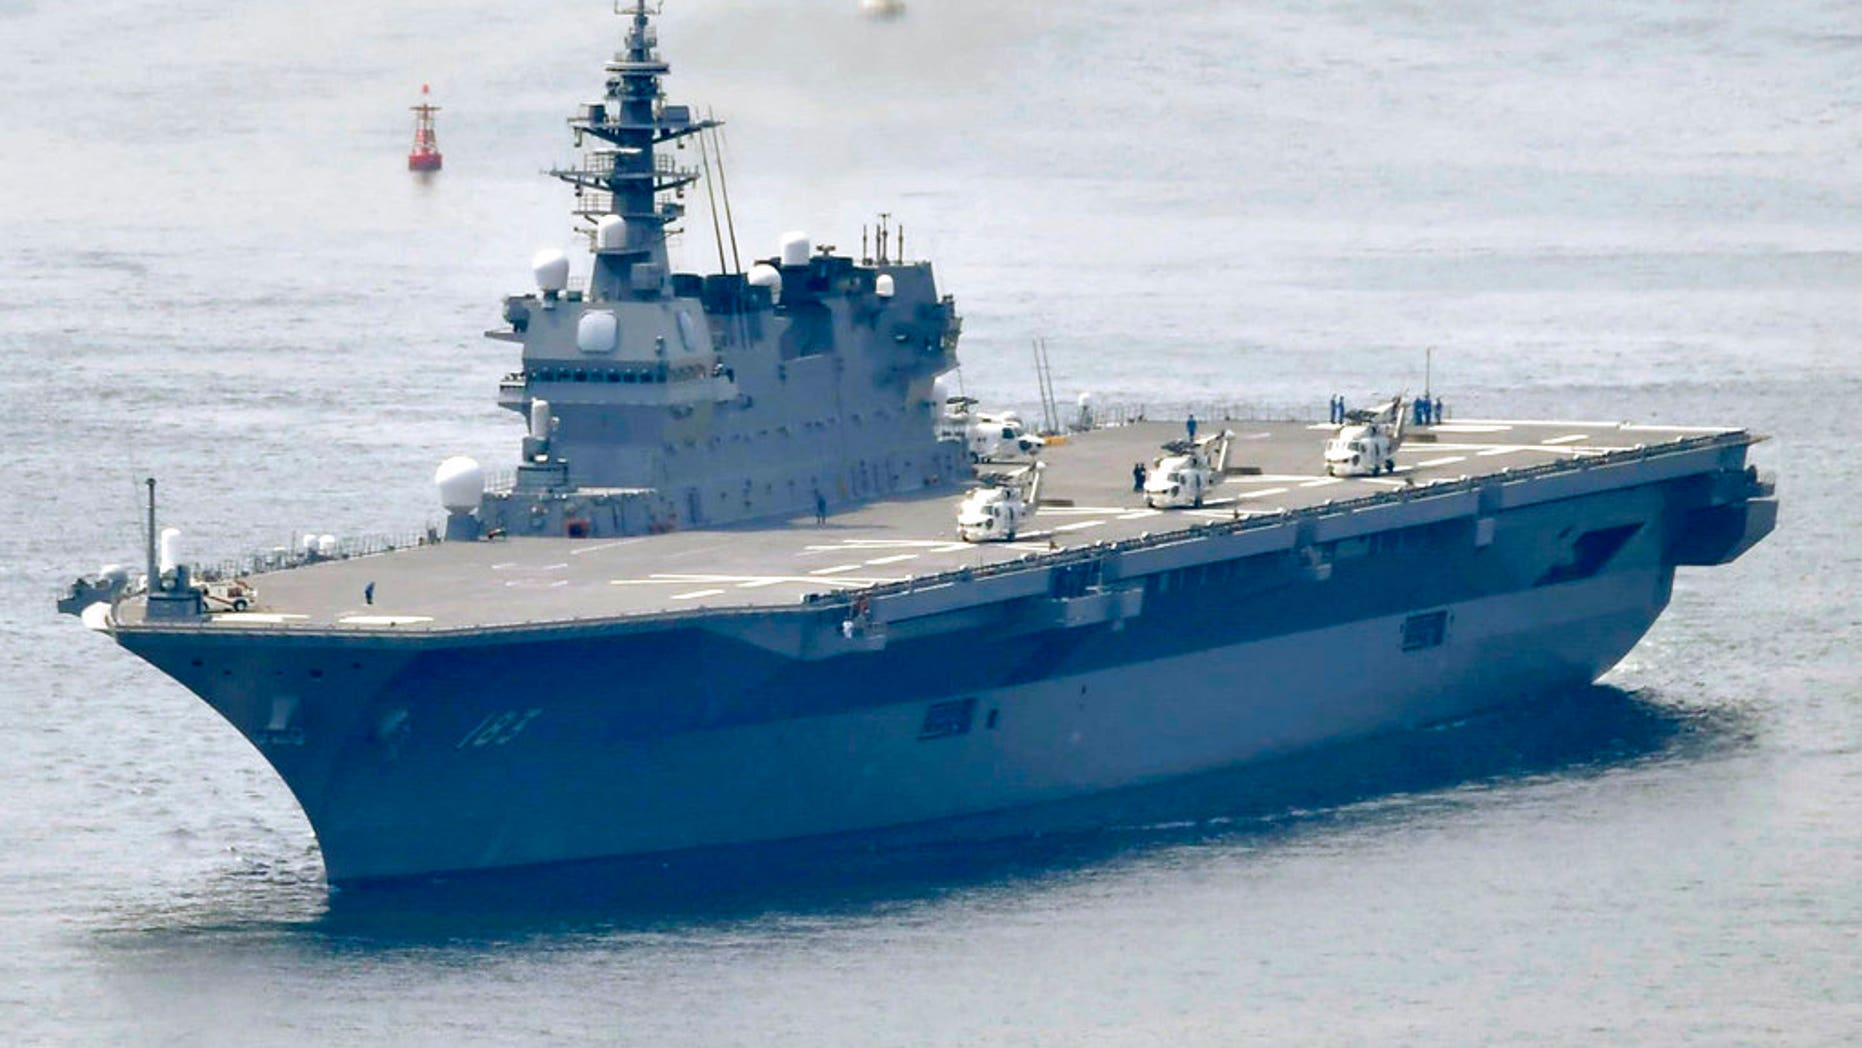 FILE: Japanese Maritime Self-Defense Force's helicopter carrier Izumo.